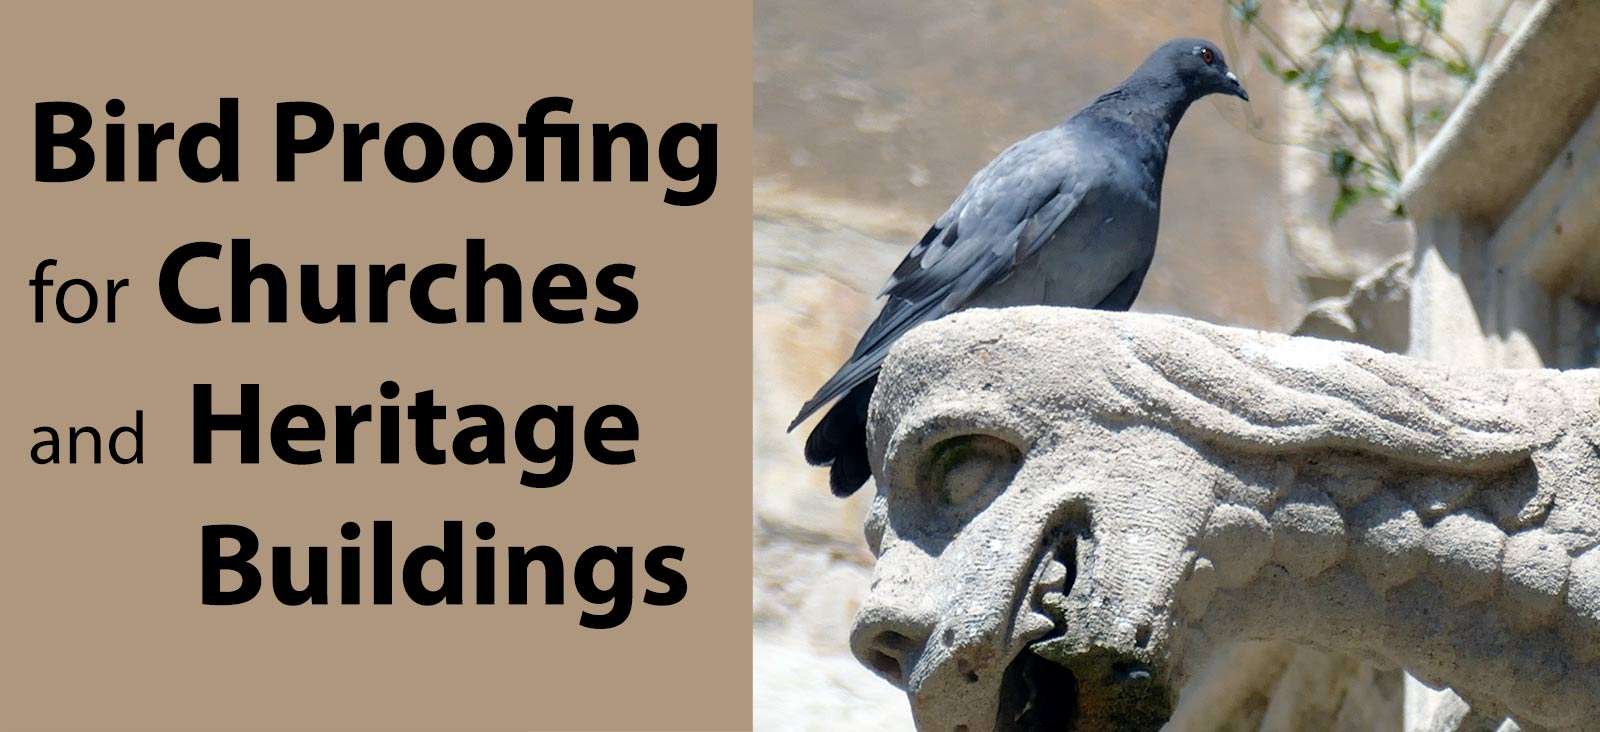 Bird-proofing Churches and historic buildings